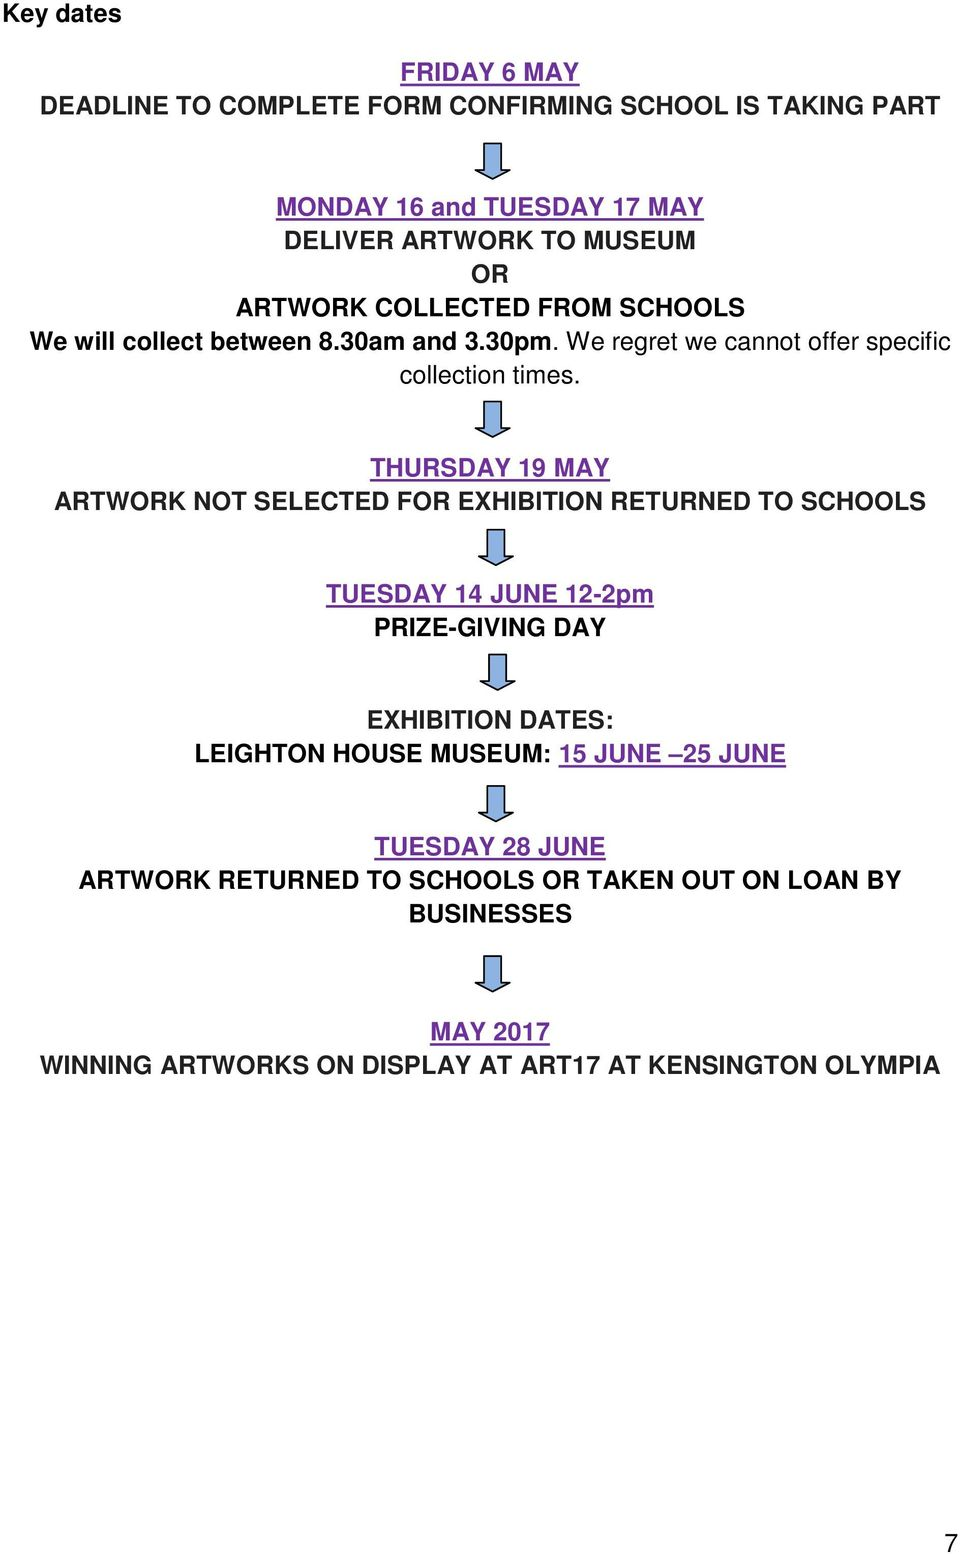 THURSDAY 19 MAY ARTWORK NOT SELECTED FOR EXHIBITION RETURNED TO SCHOOLS TUESDAY 14 JUNE 12-2pm PRIZE-GIVING DAY EXHIBITION DATES: LEIGHTON HOUSE